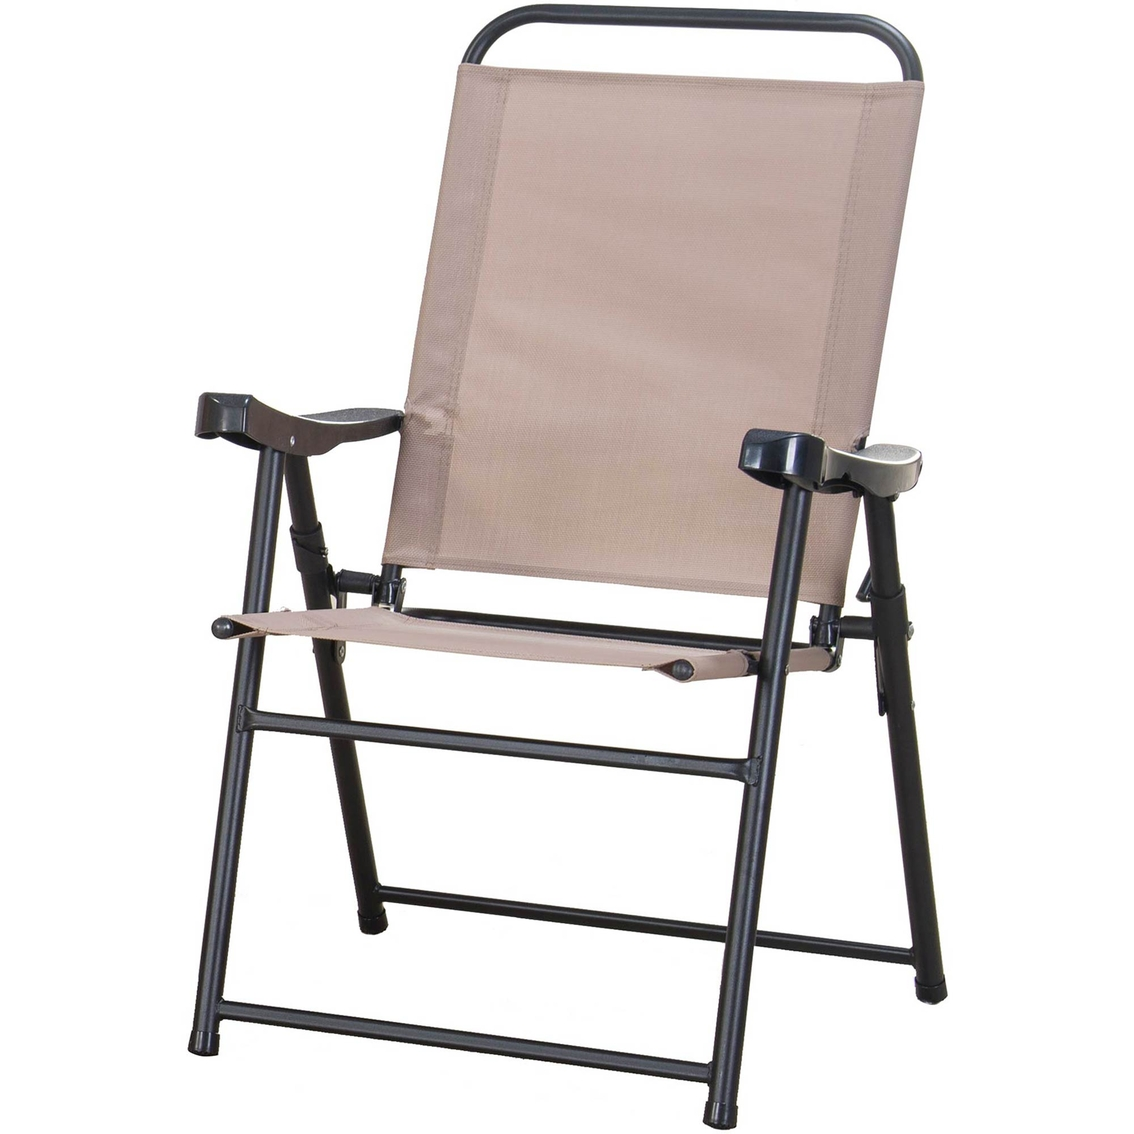 sling folding chairs oxo sprout high chair replacement parts courtyard creations tables and